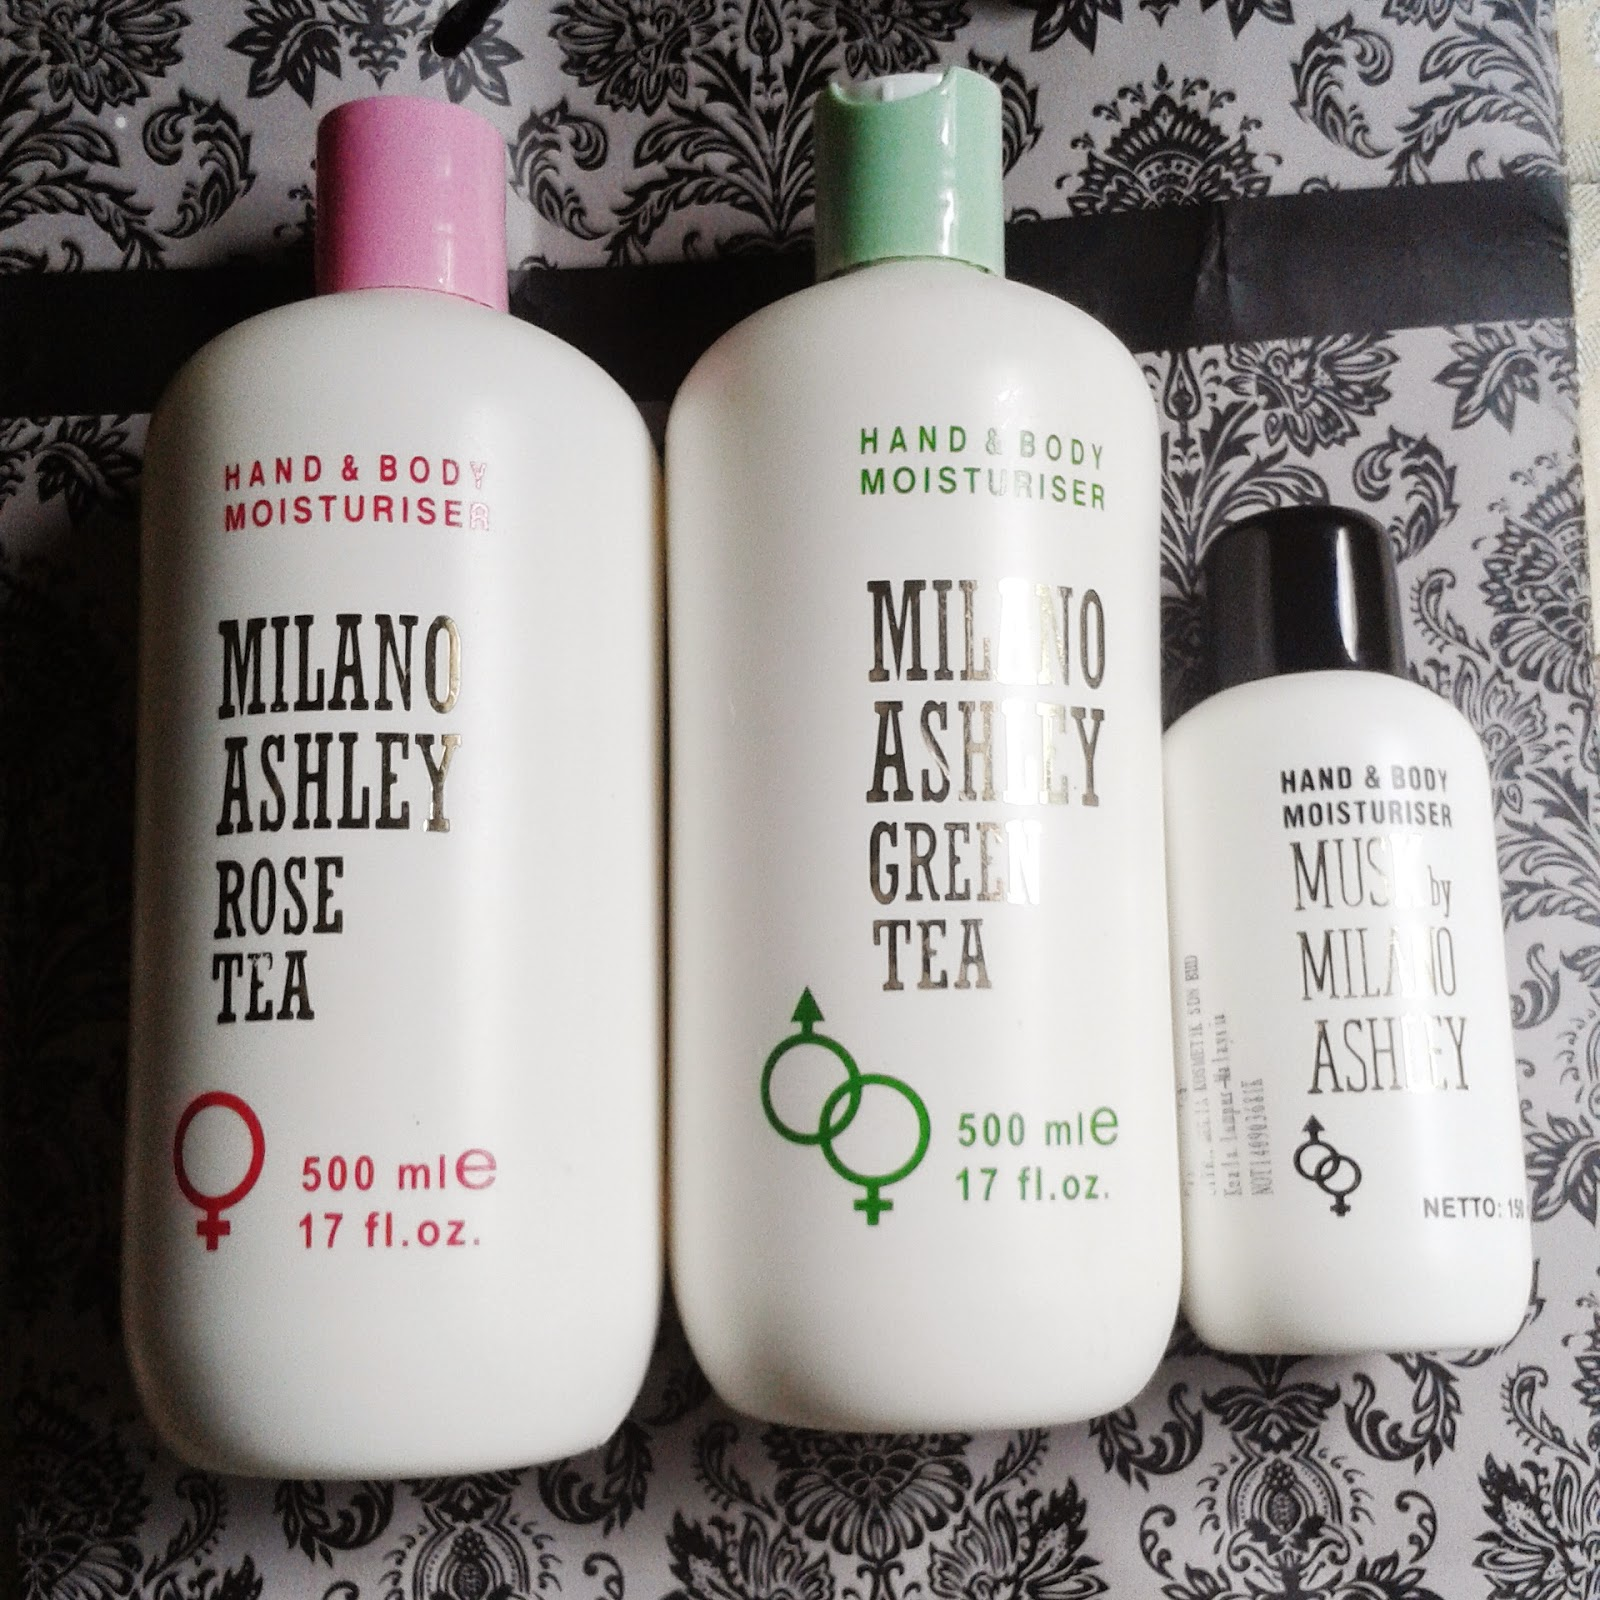 Milano Ashley Hand and Body Moisturizer